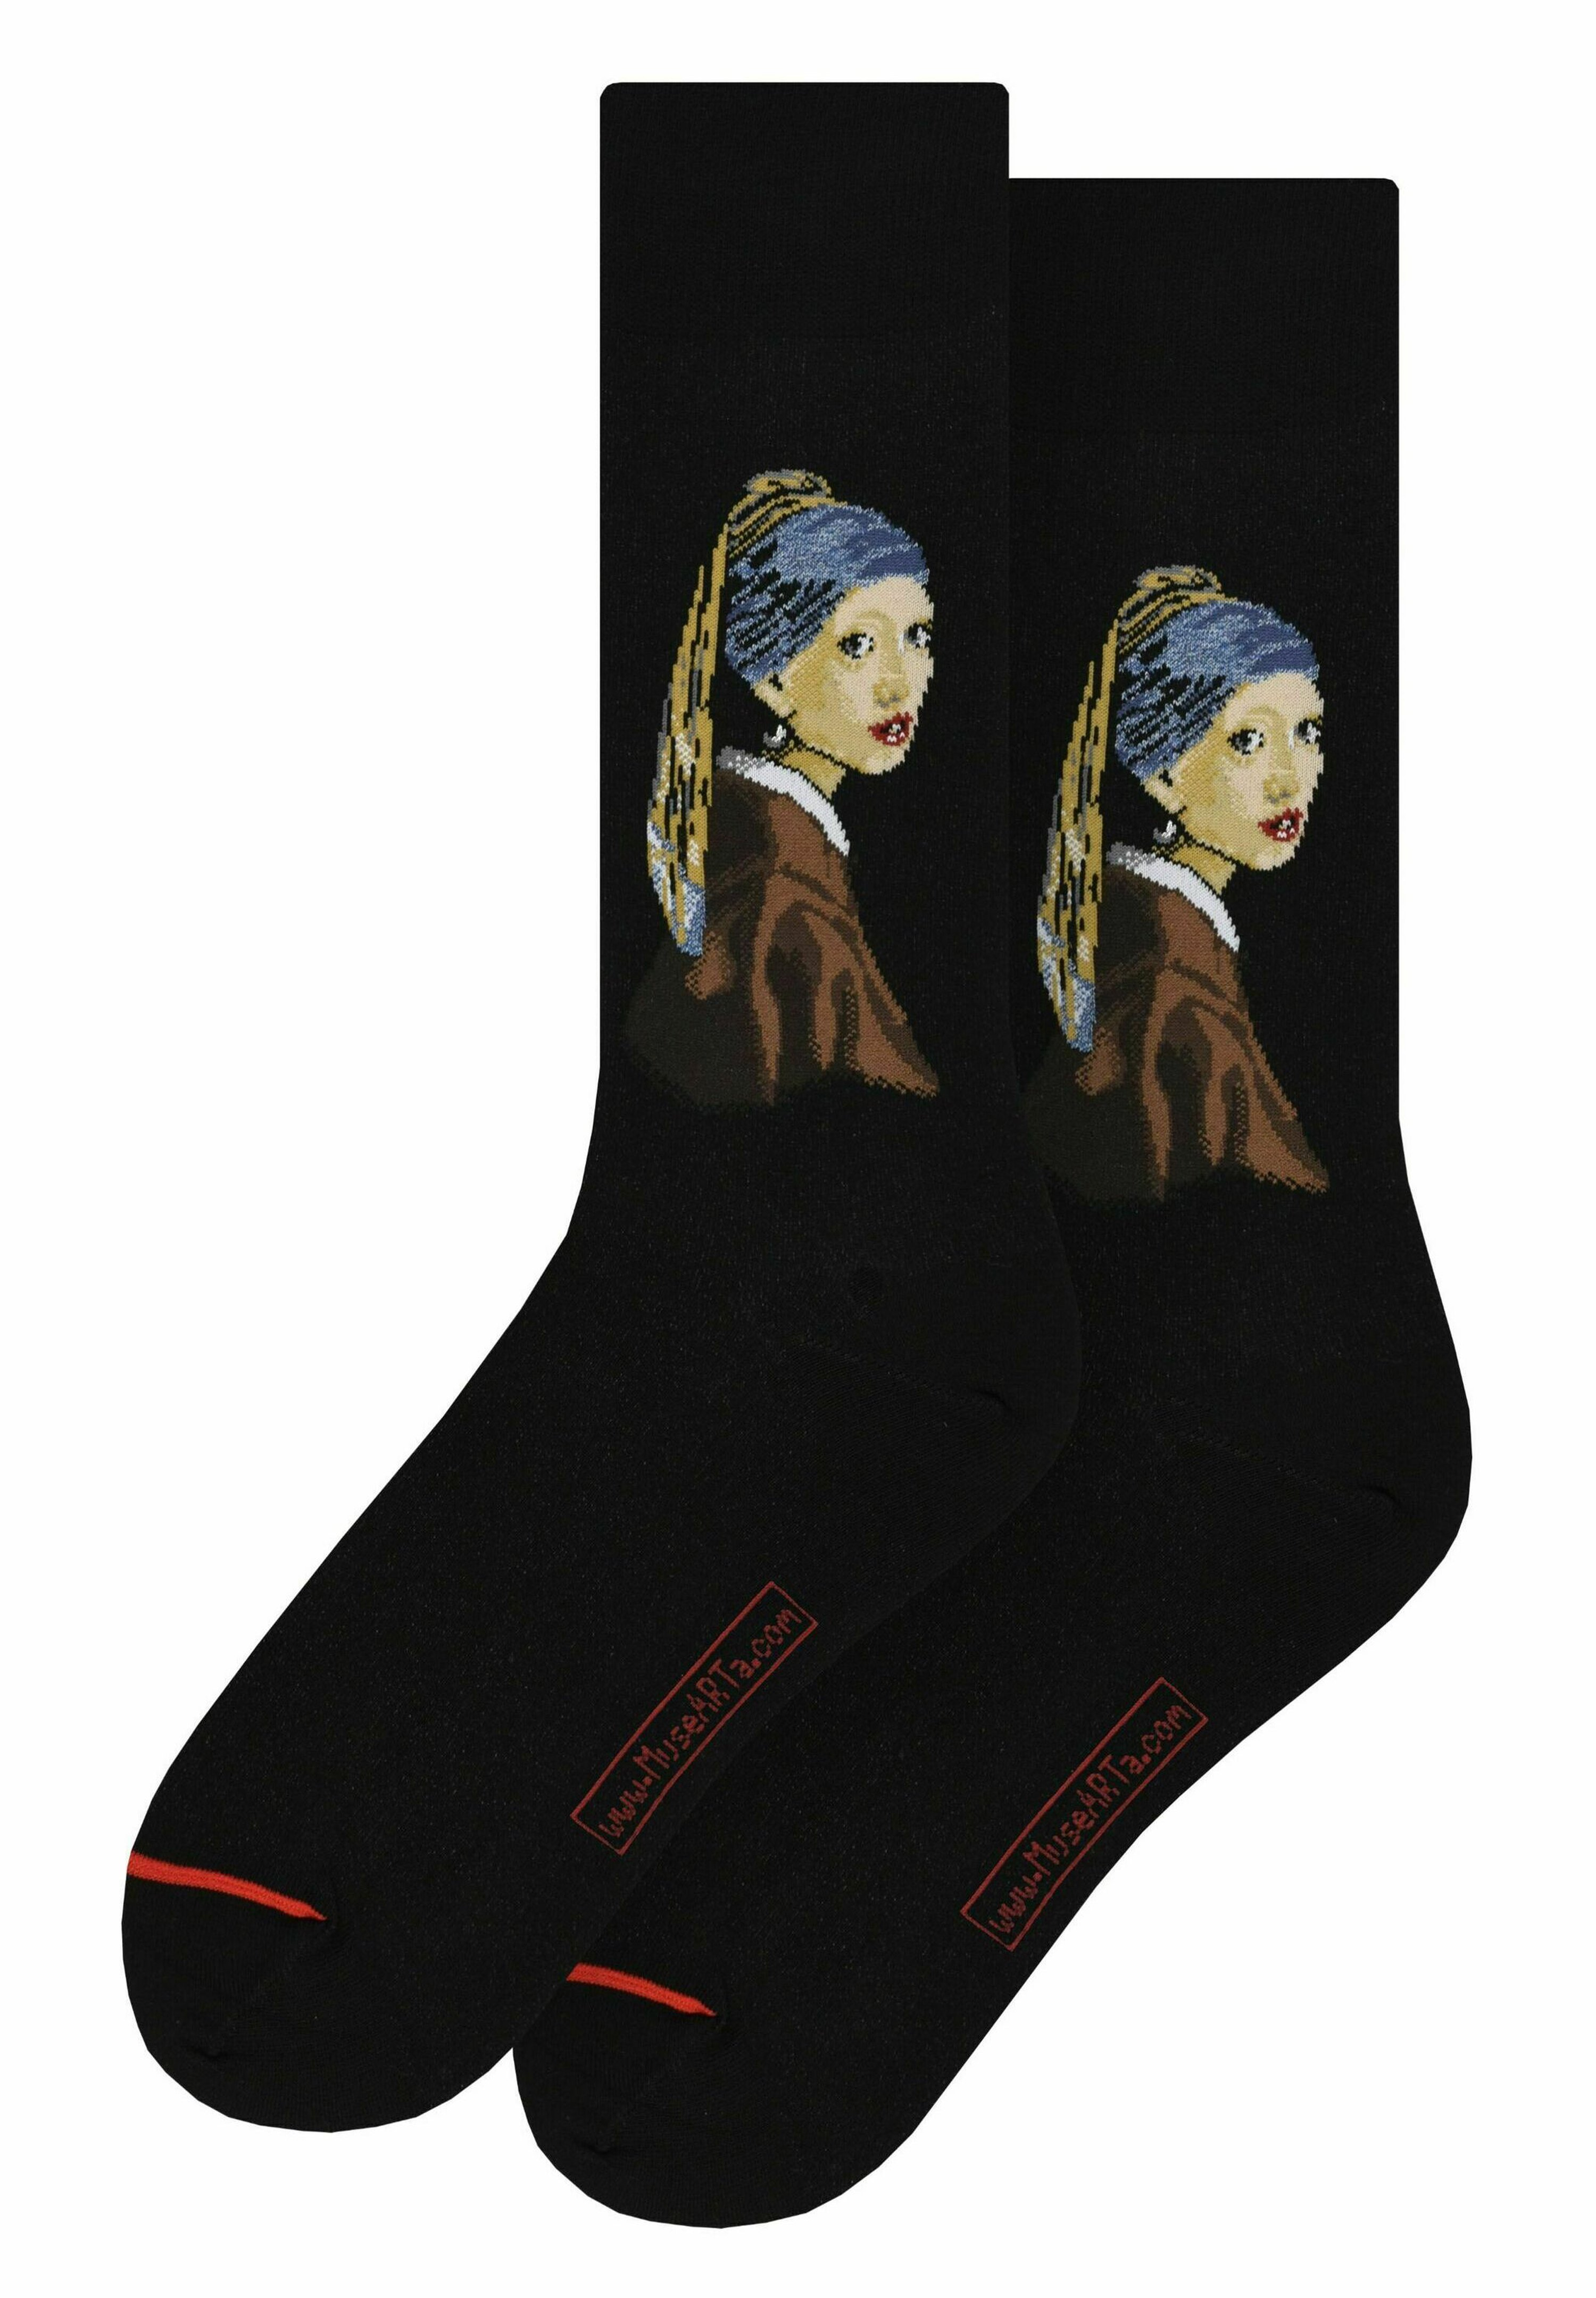 Homme JAN VERMEER : GIRL WITH A PEARL EARRING - Chaussettes